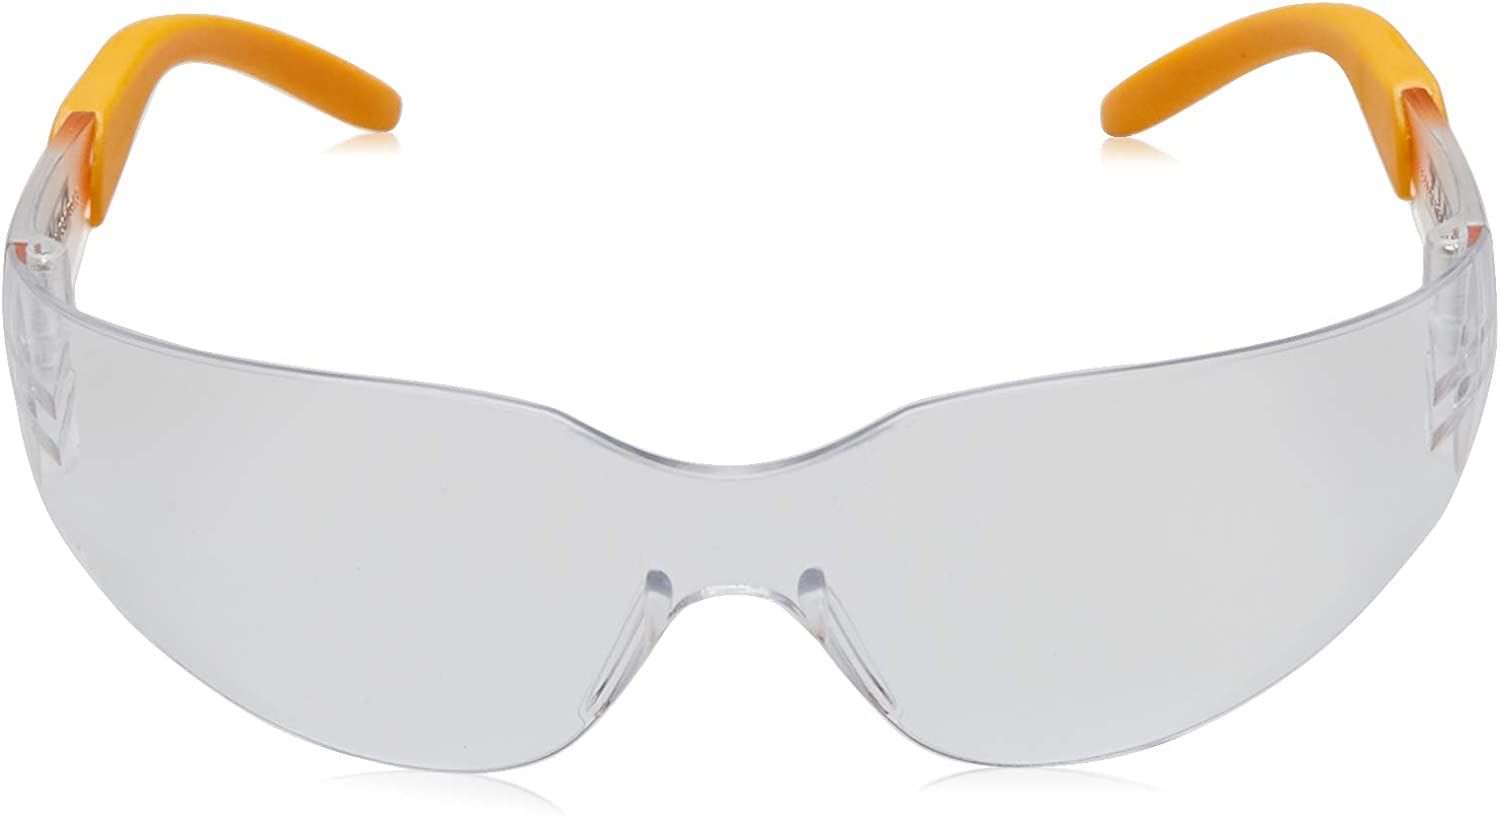 Dewalt DPG54-1D Protector Clear High Performance Lightweight Protective Safety Glasses with Wraparound Frame - Nerf Eye Protection -